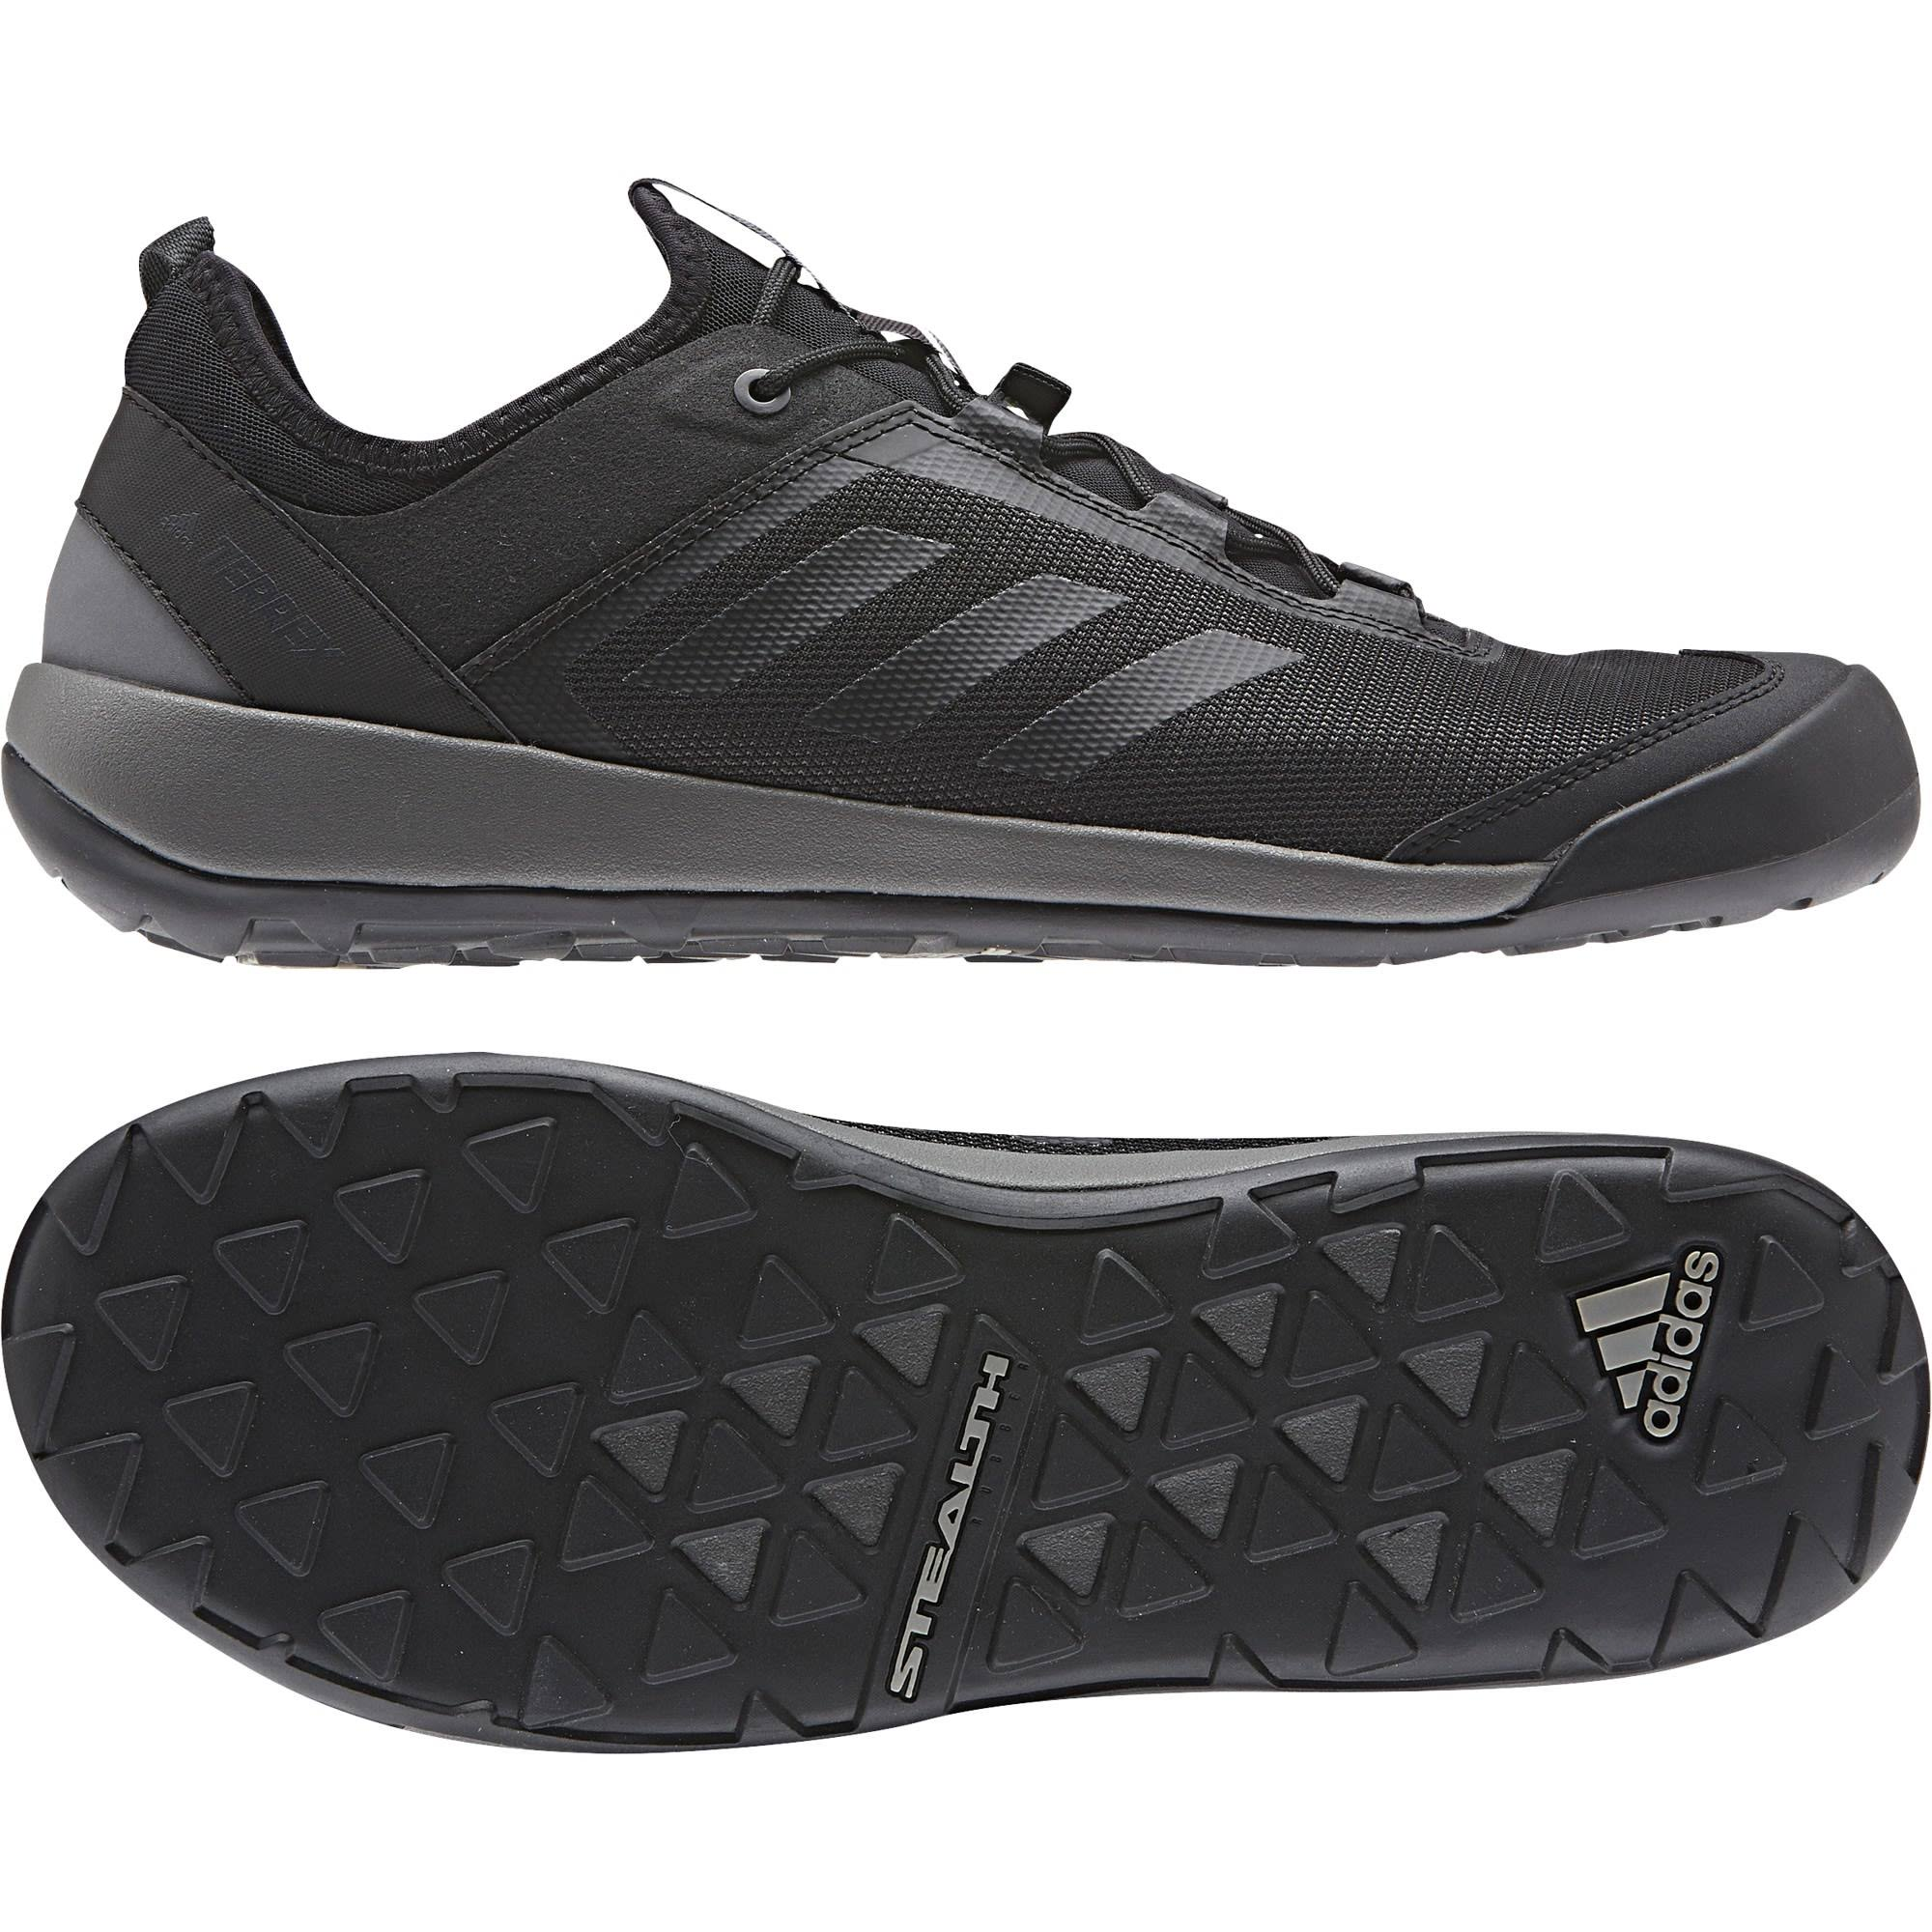 Terrex Grey 43 3 Eu Adidas Four Solo Swift BlackCore 1 Utility 0wkOPn